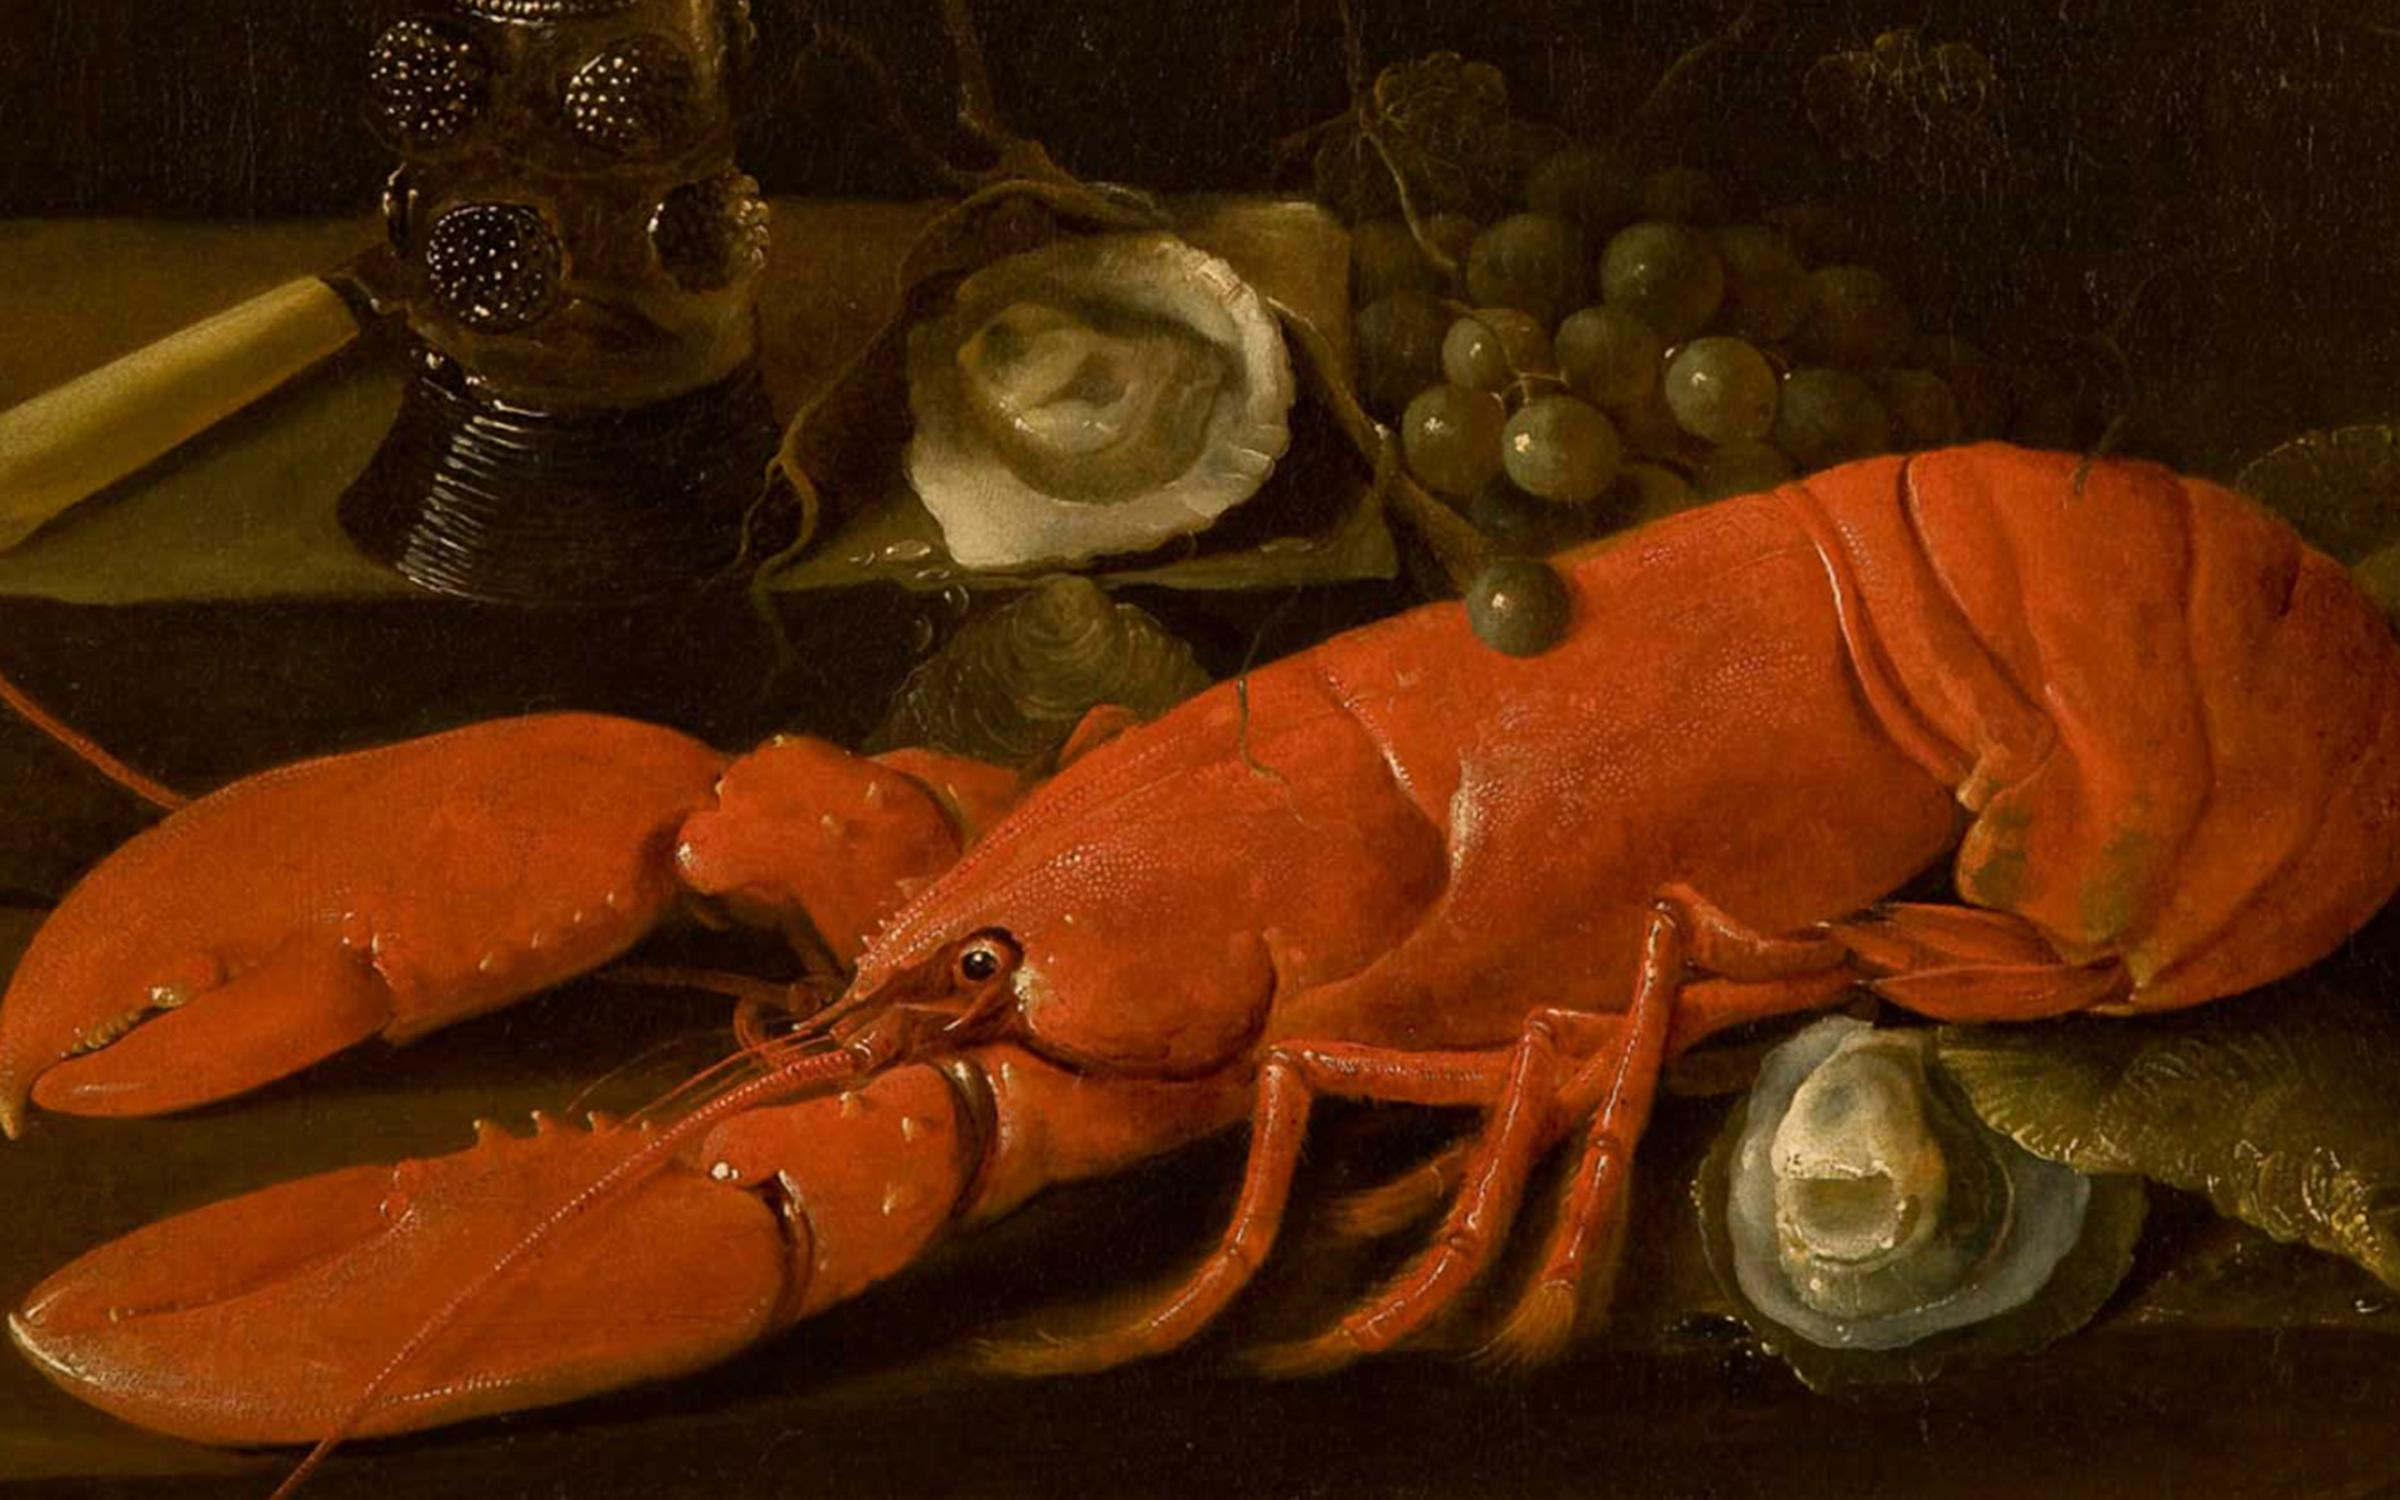 Abraham Susenier (Dutch, ca. 1620-1668), Still Life with a Lobster, Römer, Oysters, Grapes, and a Knife,ca. 1660s, oil on canvas, 21 x 25 1/2 in., purchased with funds from the Emma Eccles Jones Foundation, conserved with funds from the Ann K. Stewart Conservation Fund, UMFA2003.34.1.